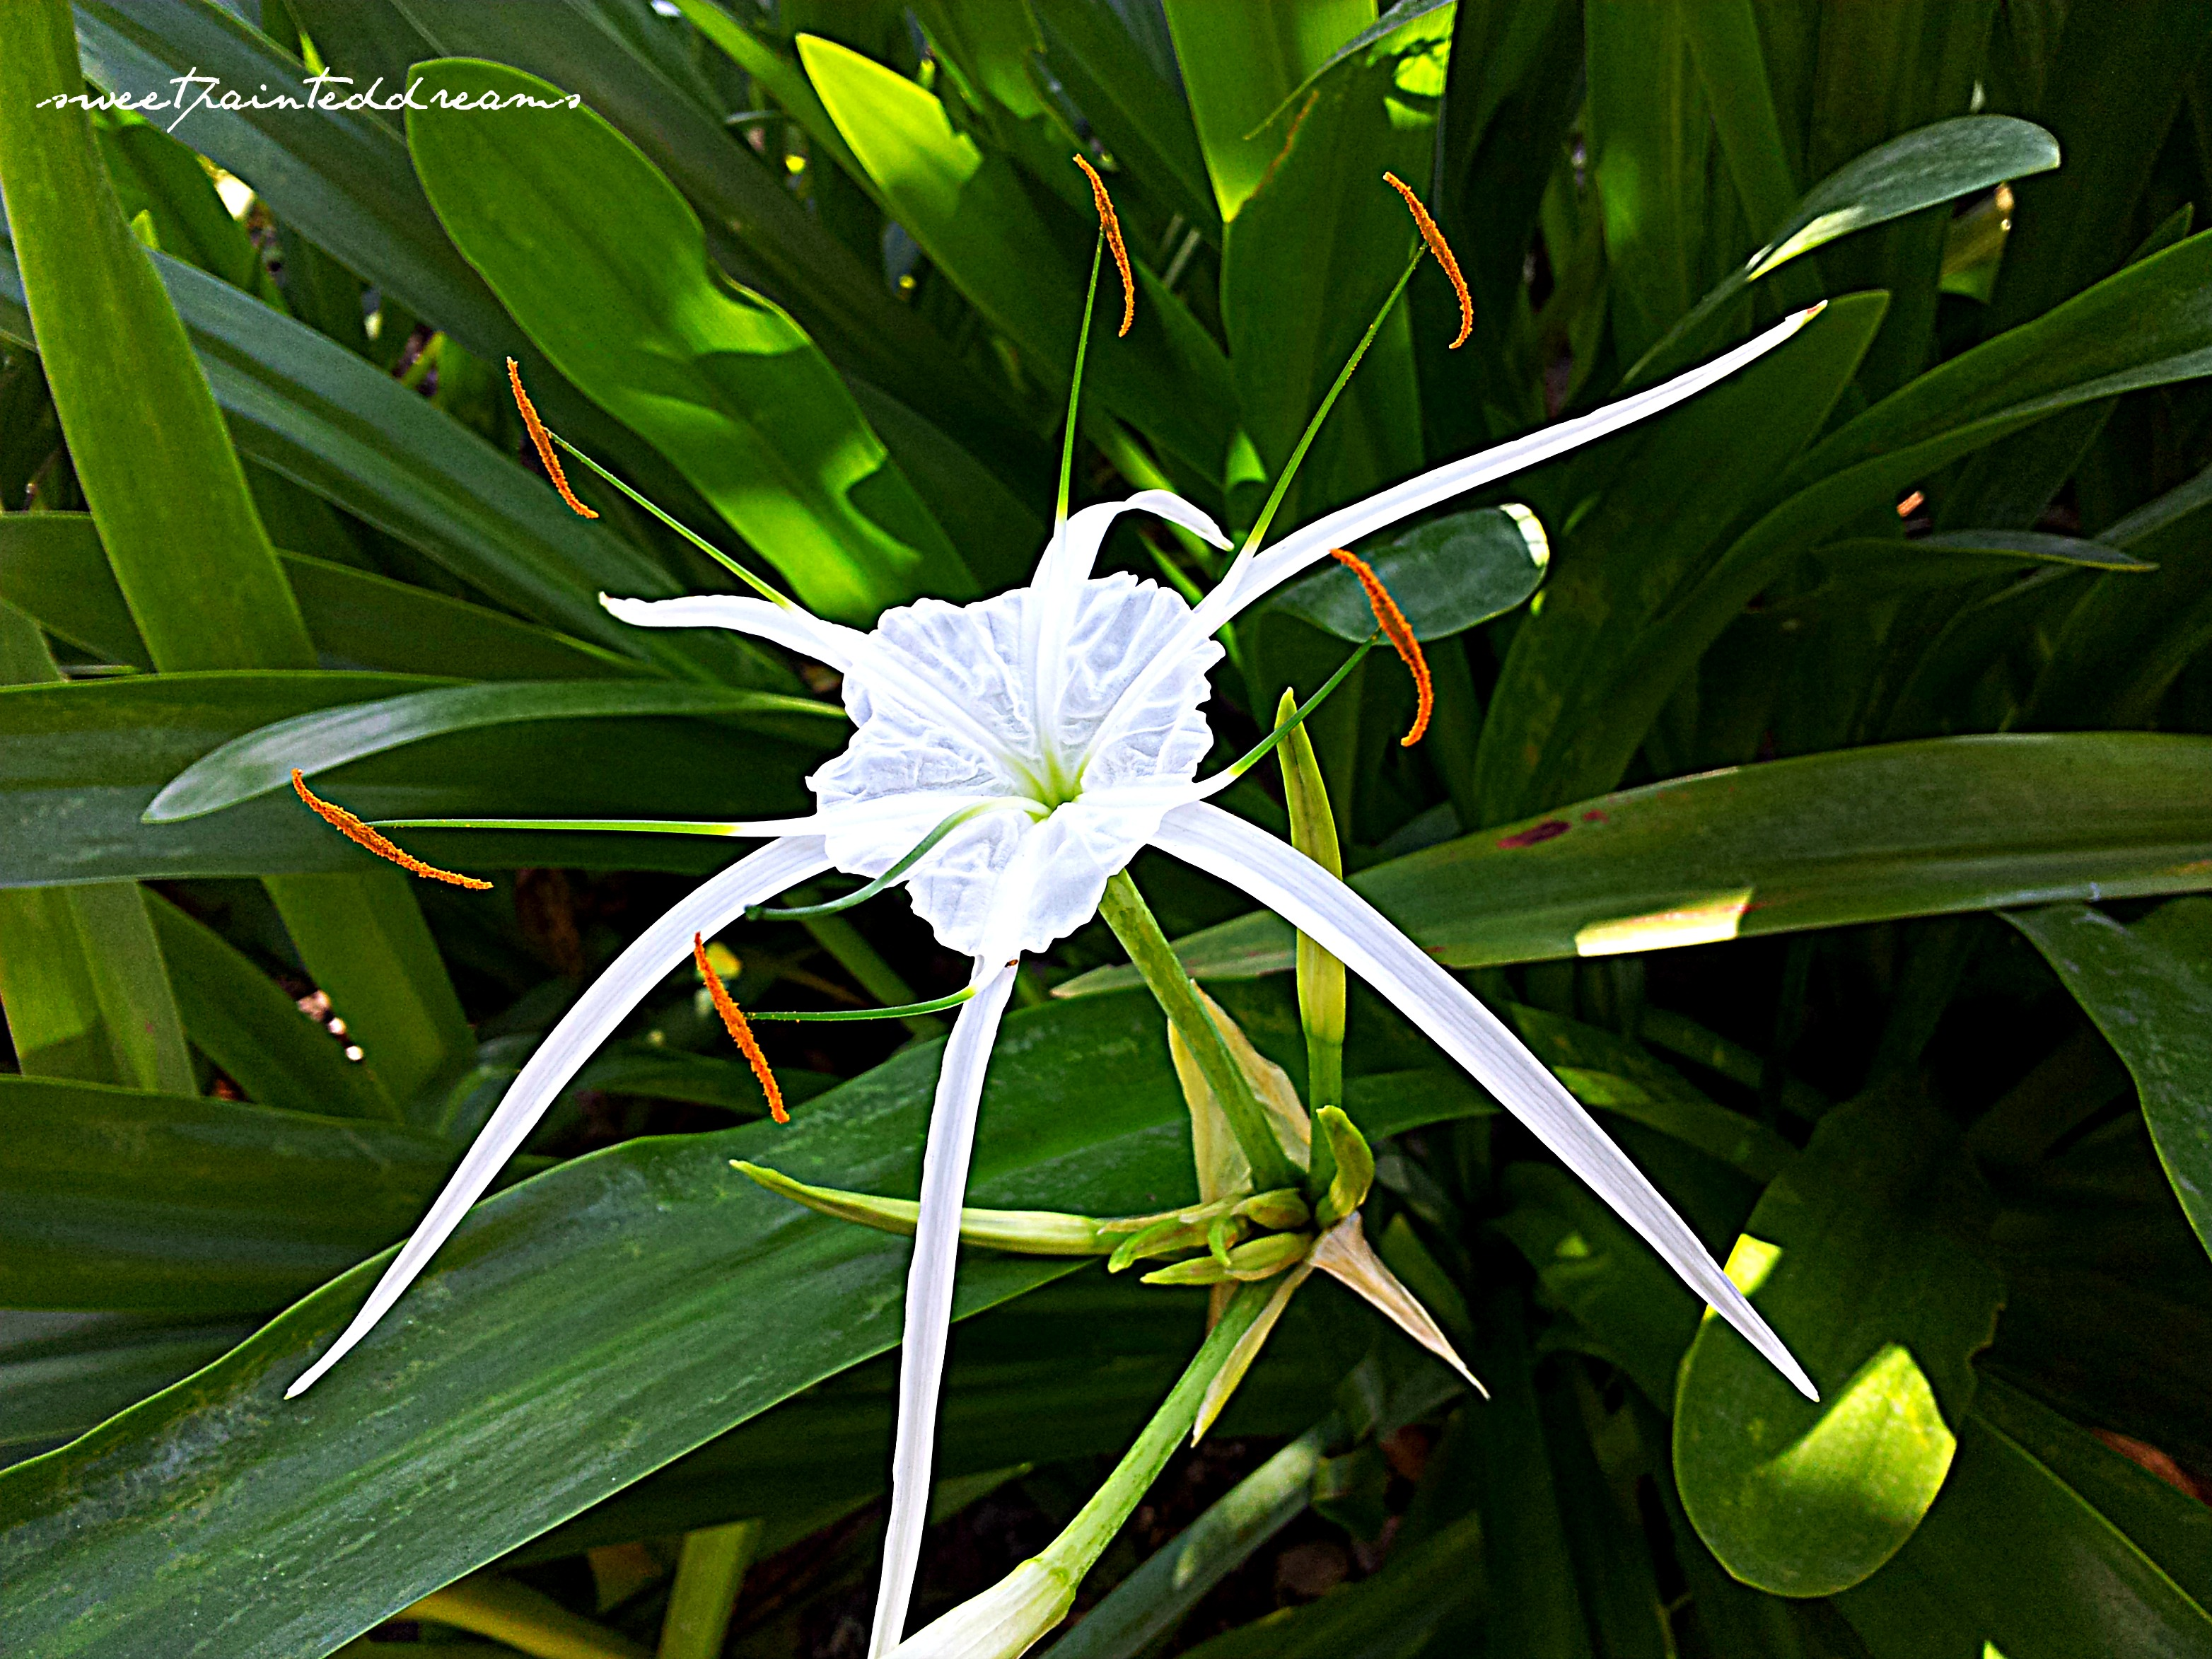 Photos of the day spider lily my sweetpainteddreams spider lily izmirmasajfo